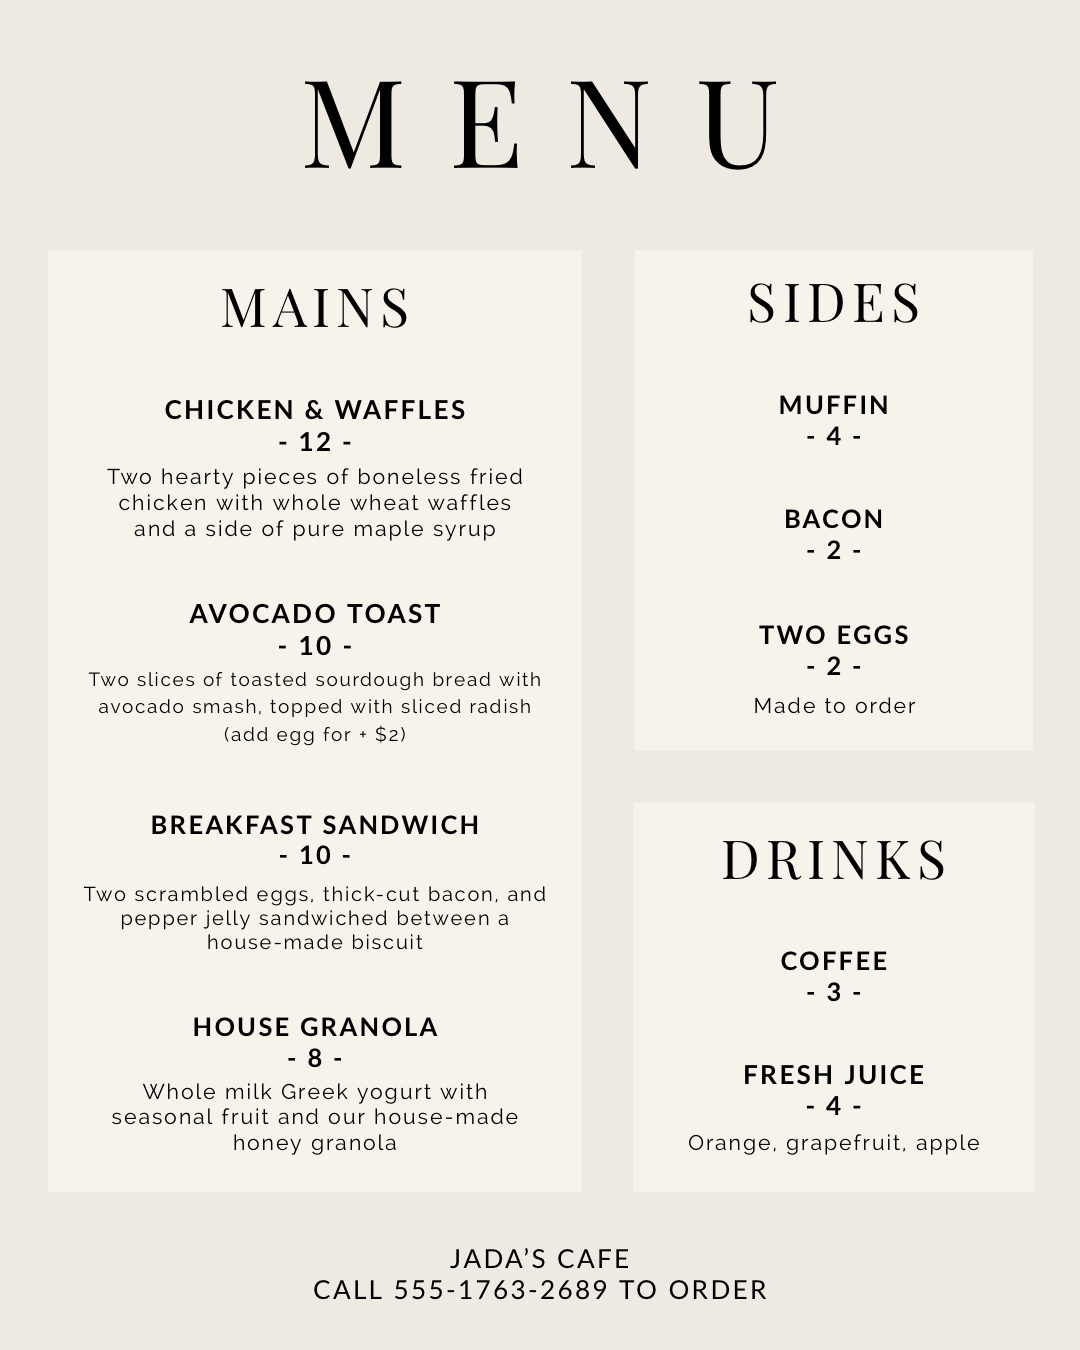 Black and White Elegant Restaurant Menu Menu Mains DRINKS SIDES JADA'S CAFE CALL 555-1763-2689 TO ORDER AVOCADO TOAST - 10 - BREAKFAST SANDWICH - 10 - CHICKEN & WAFFLES - 12 - HOUSE GRANOLA - 8 - Orange, grapefruit, apple FRESH JUICE - 4 - TWO EGGS - 2 - BACON - 2 - MUFFIN - 4 - COFFEE - 3 - Whole milk Greek yogurt with seasonal fruit and our house-made honey granola Two hearty pieces of boneless fried chicken with whole wheat waffles and a side of pure maple syrup Made to order Two scrambled eggs, thick-cut bacon, and pepper jelly sandwiched between a house-made biscuit Two slices of toasted sourdough bread with avocado smash, topped with sliced radish (add egg for + $2)